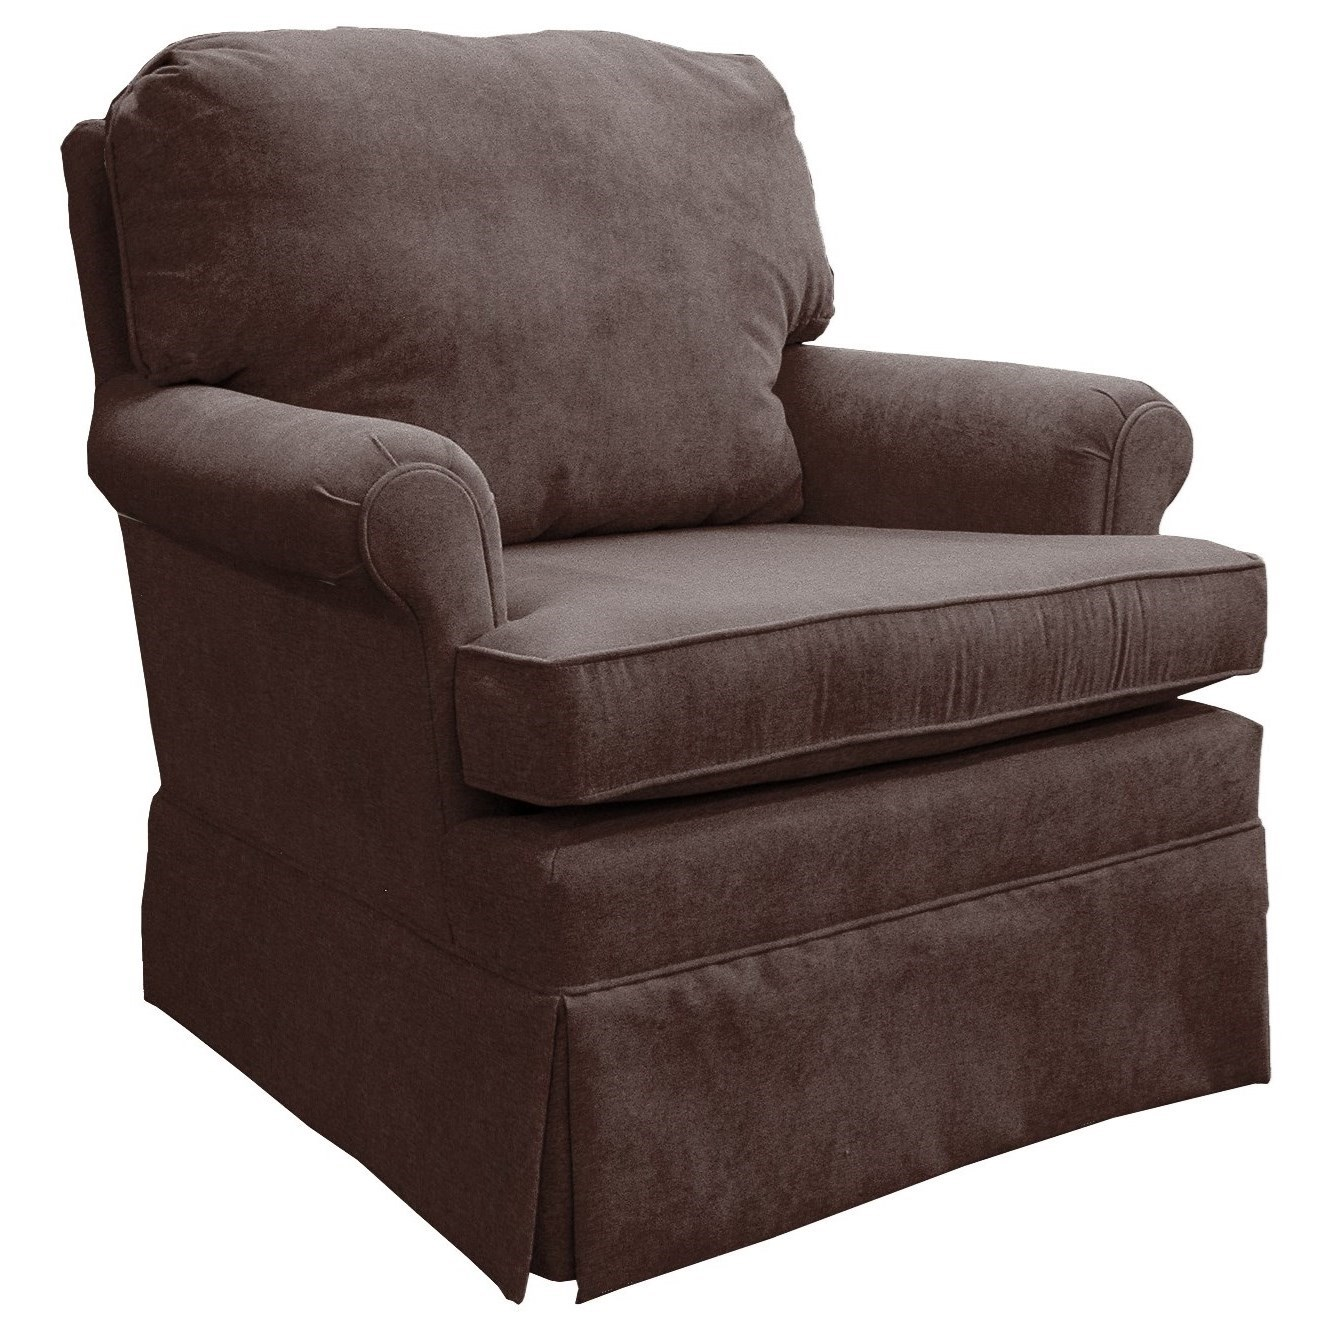 Upholstered Glider Chair Best Home Furnishings Patoka 2617 Traditional Swivel